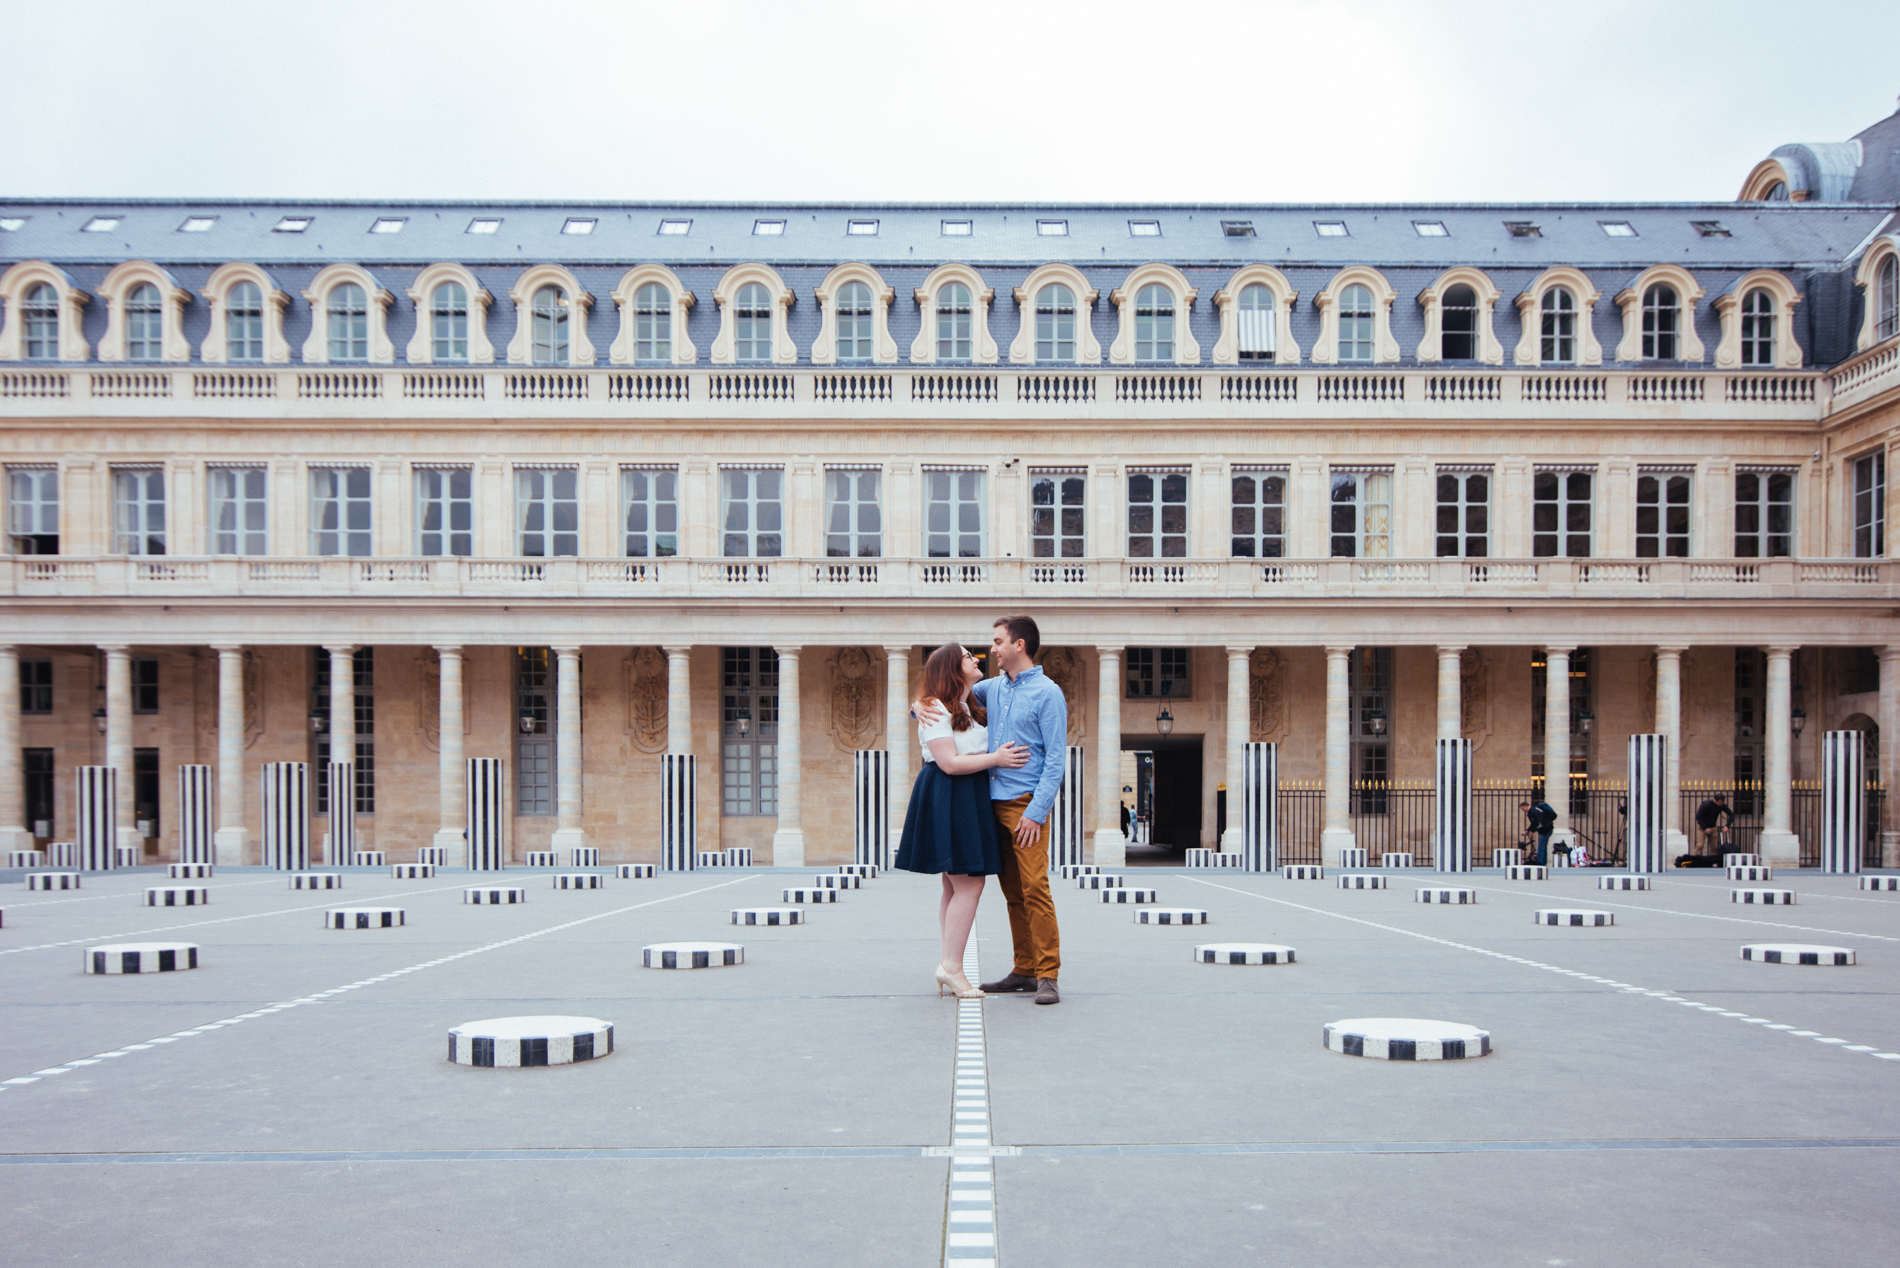 seance-engagement-paris-maldeme-photographe-palais royal-4